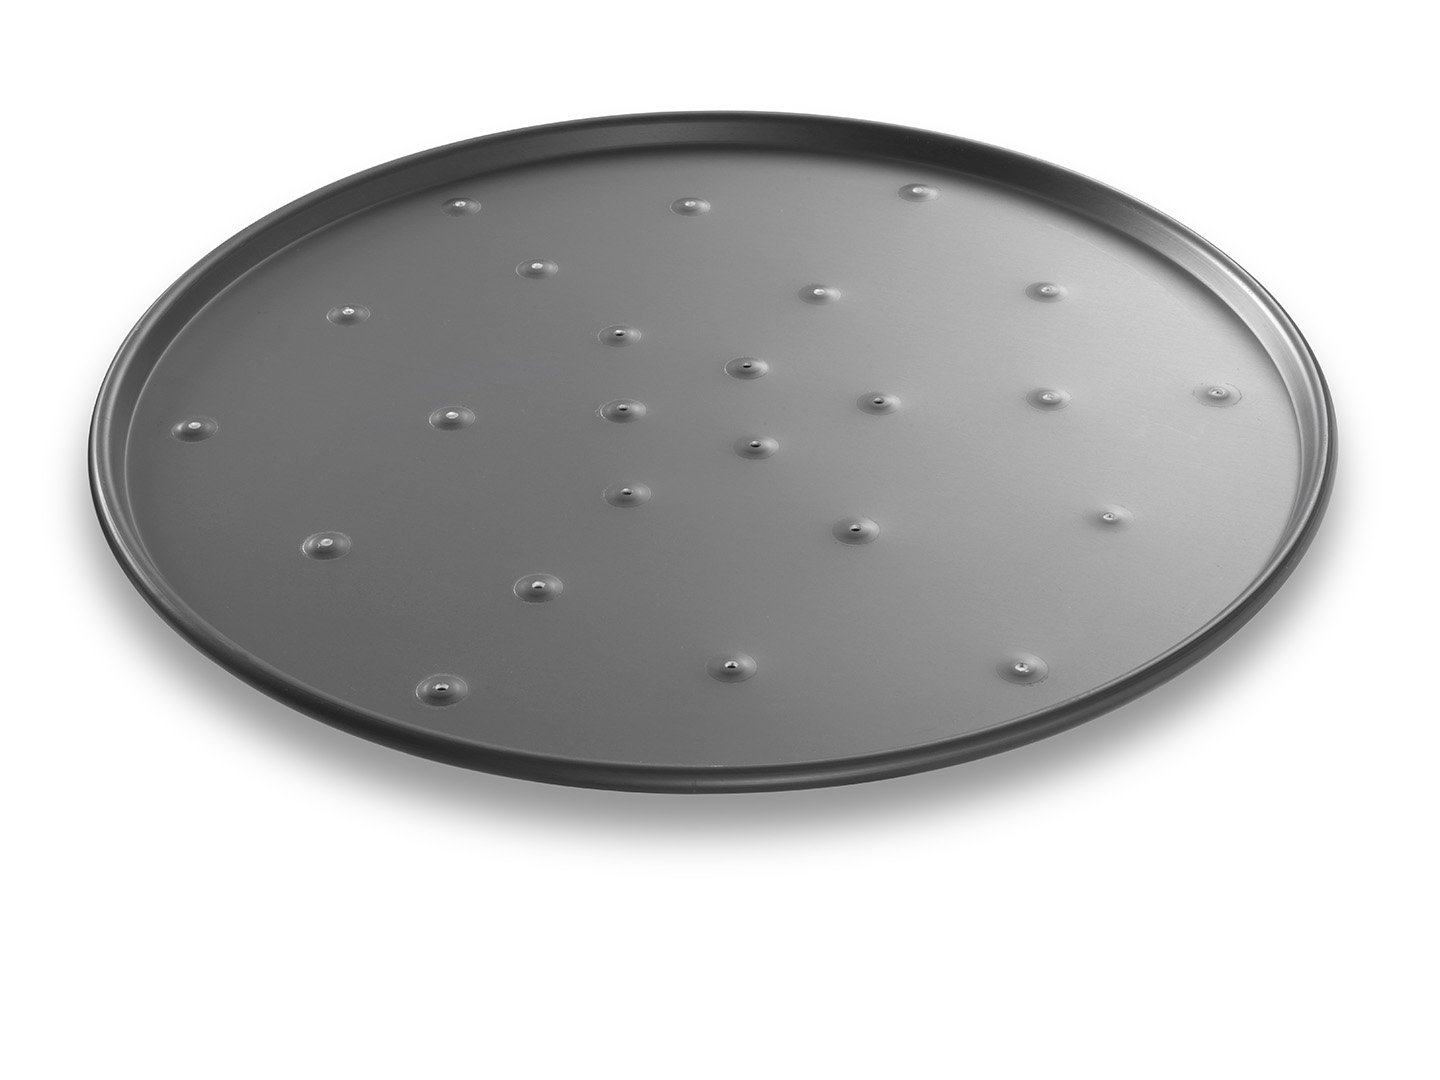 Round Perforated Pizza Pan – Anodized Aluminum